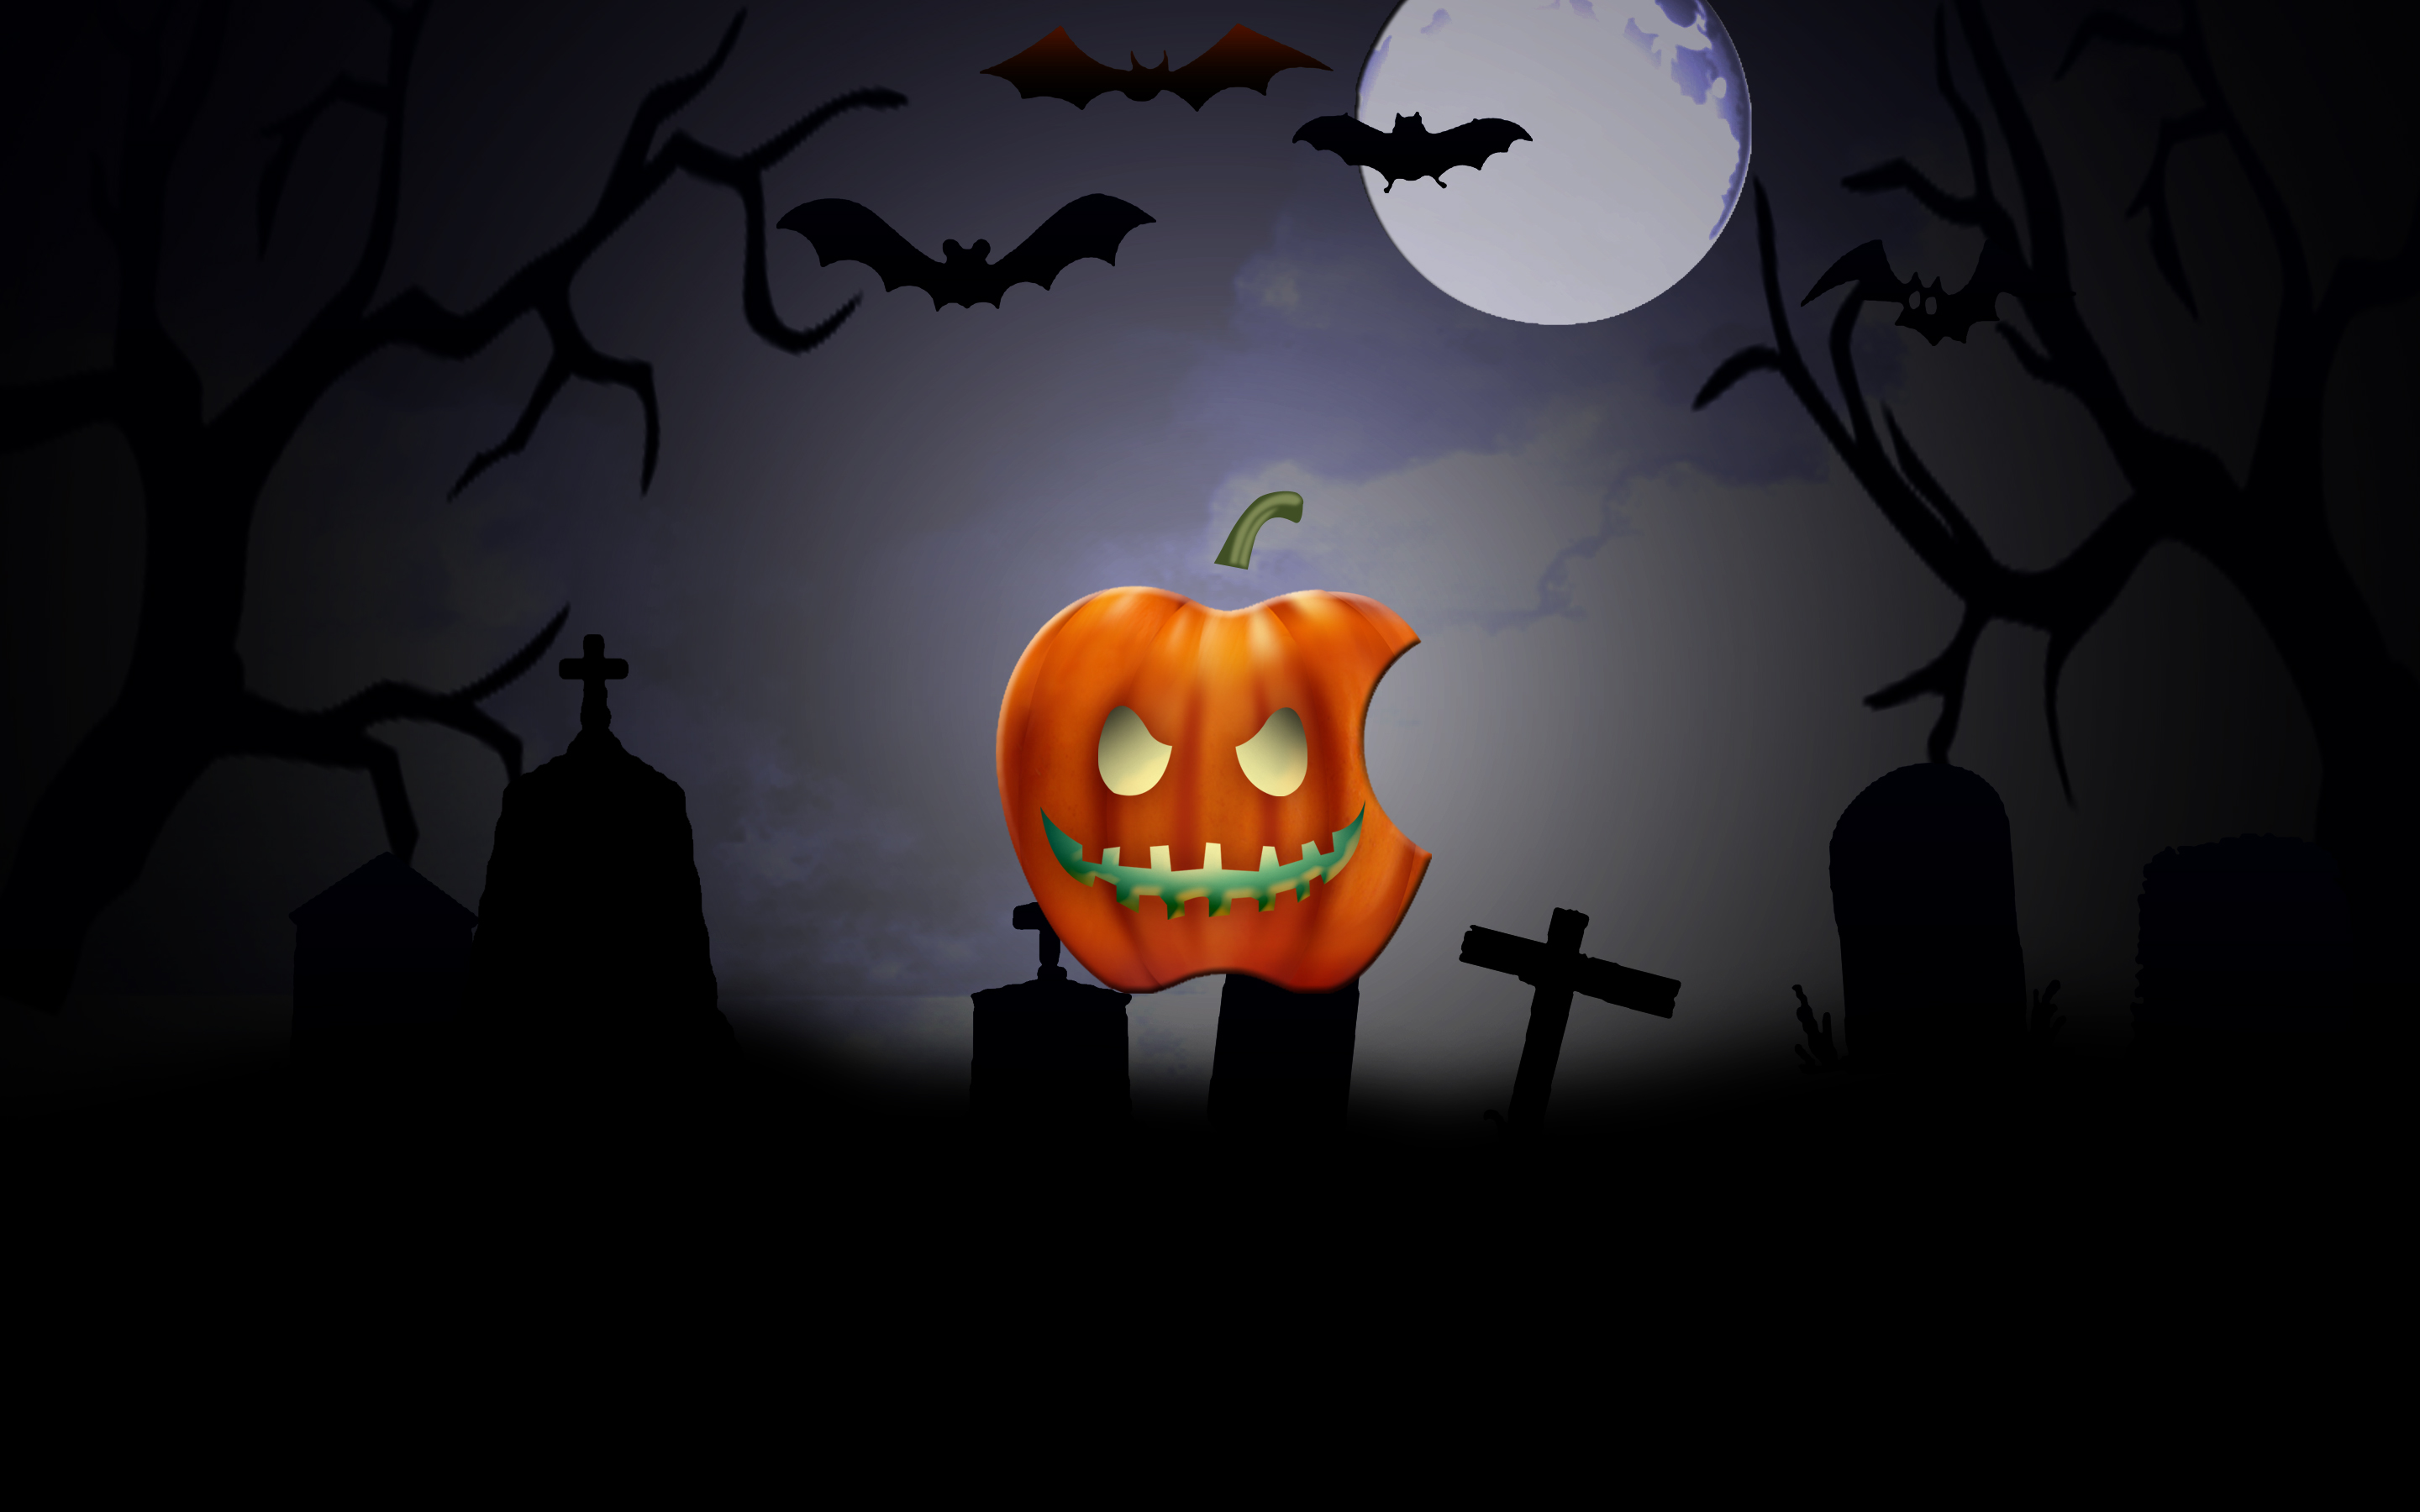 iPhone iPad MacBook Air MacBook Pro iMac Apple Logo Wallpaper ハロウィン